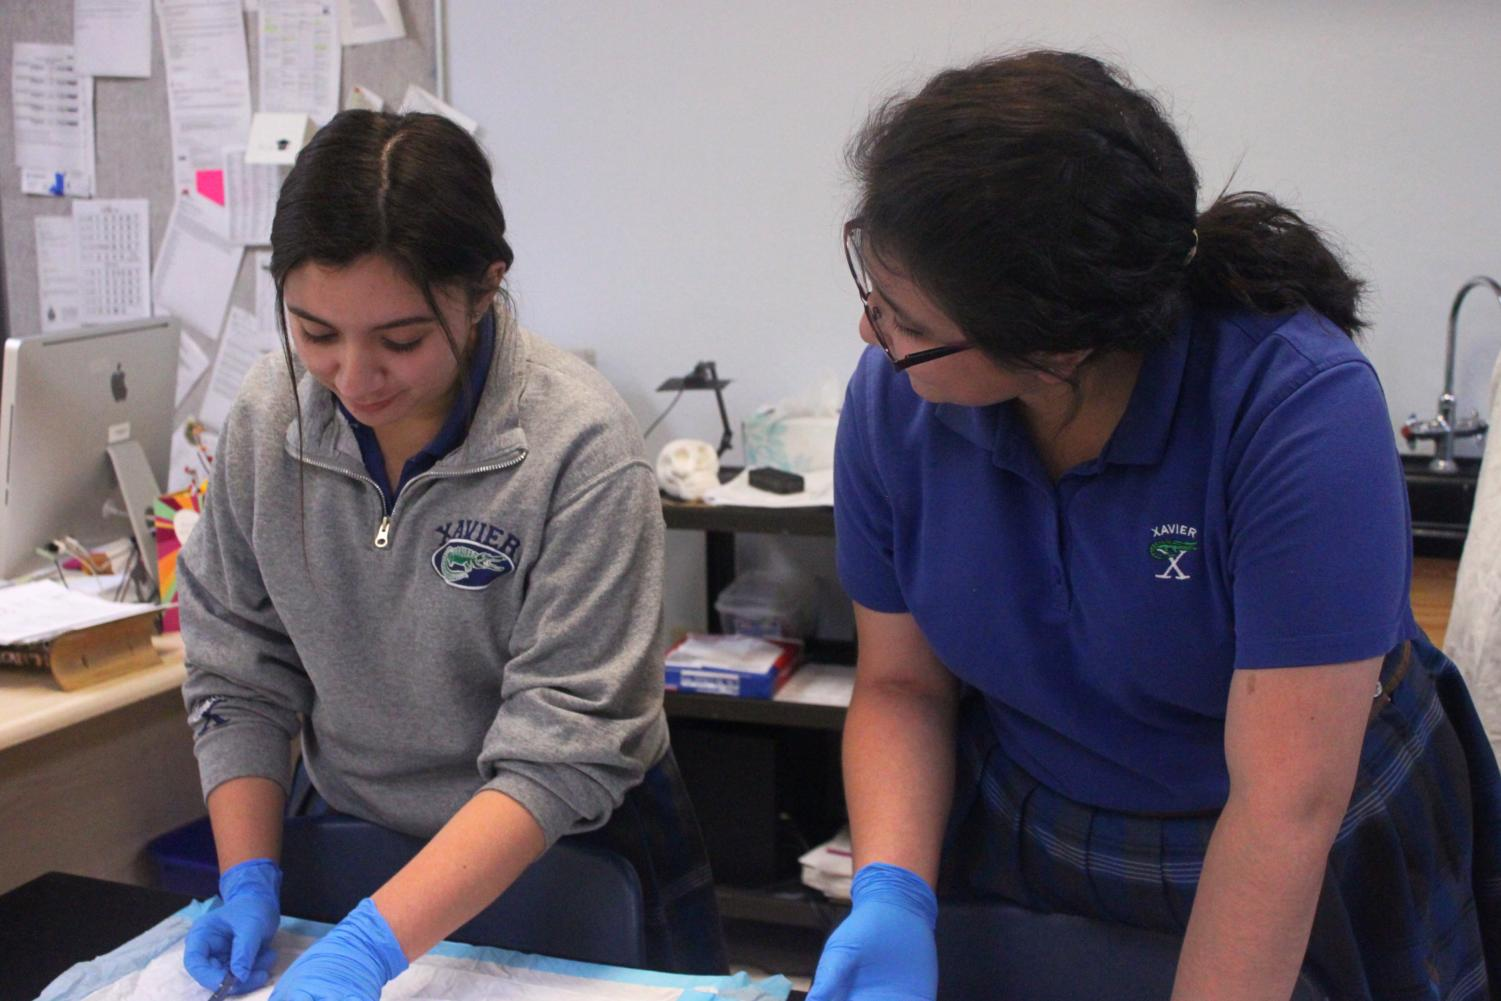 Xavier students dissecting a rat for service hours. Photo from Hannah Shulski '19.